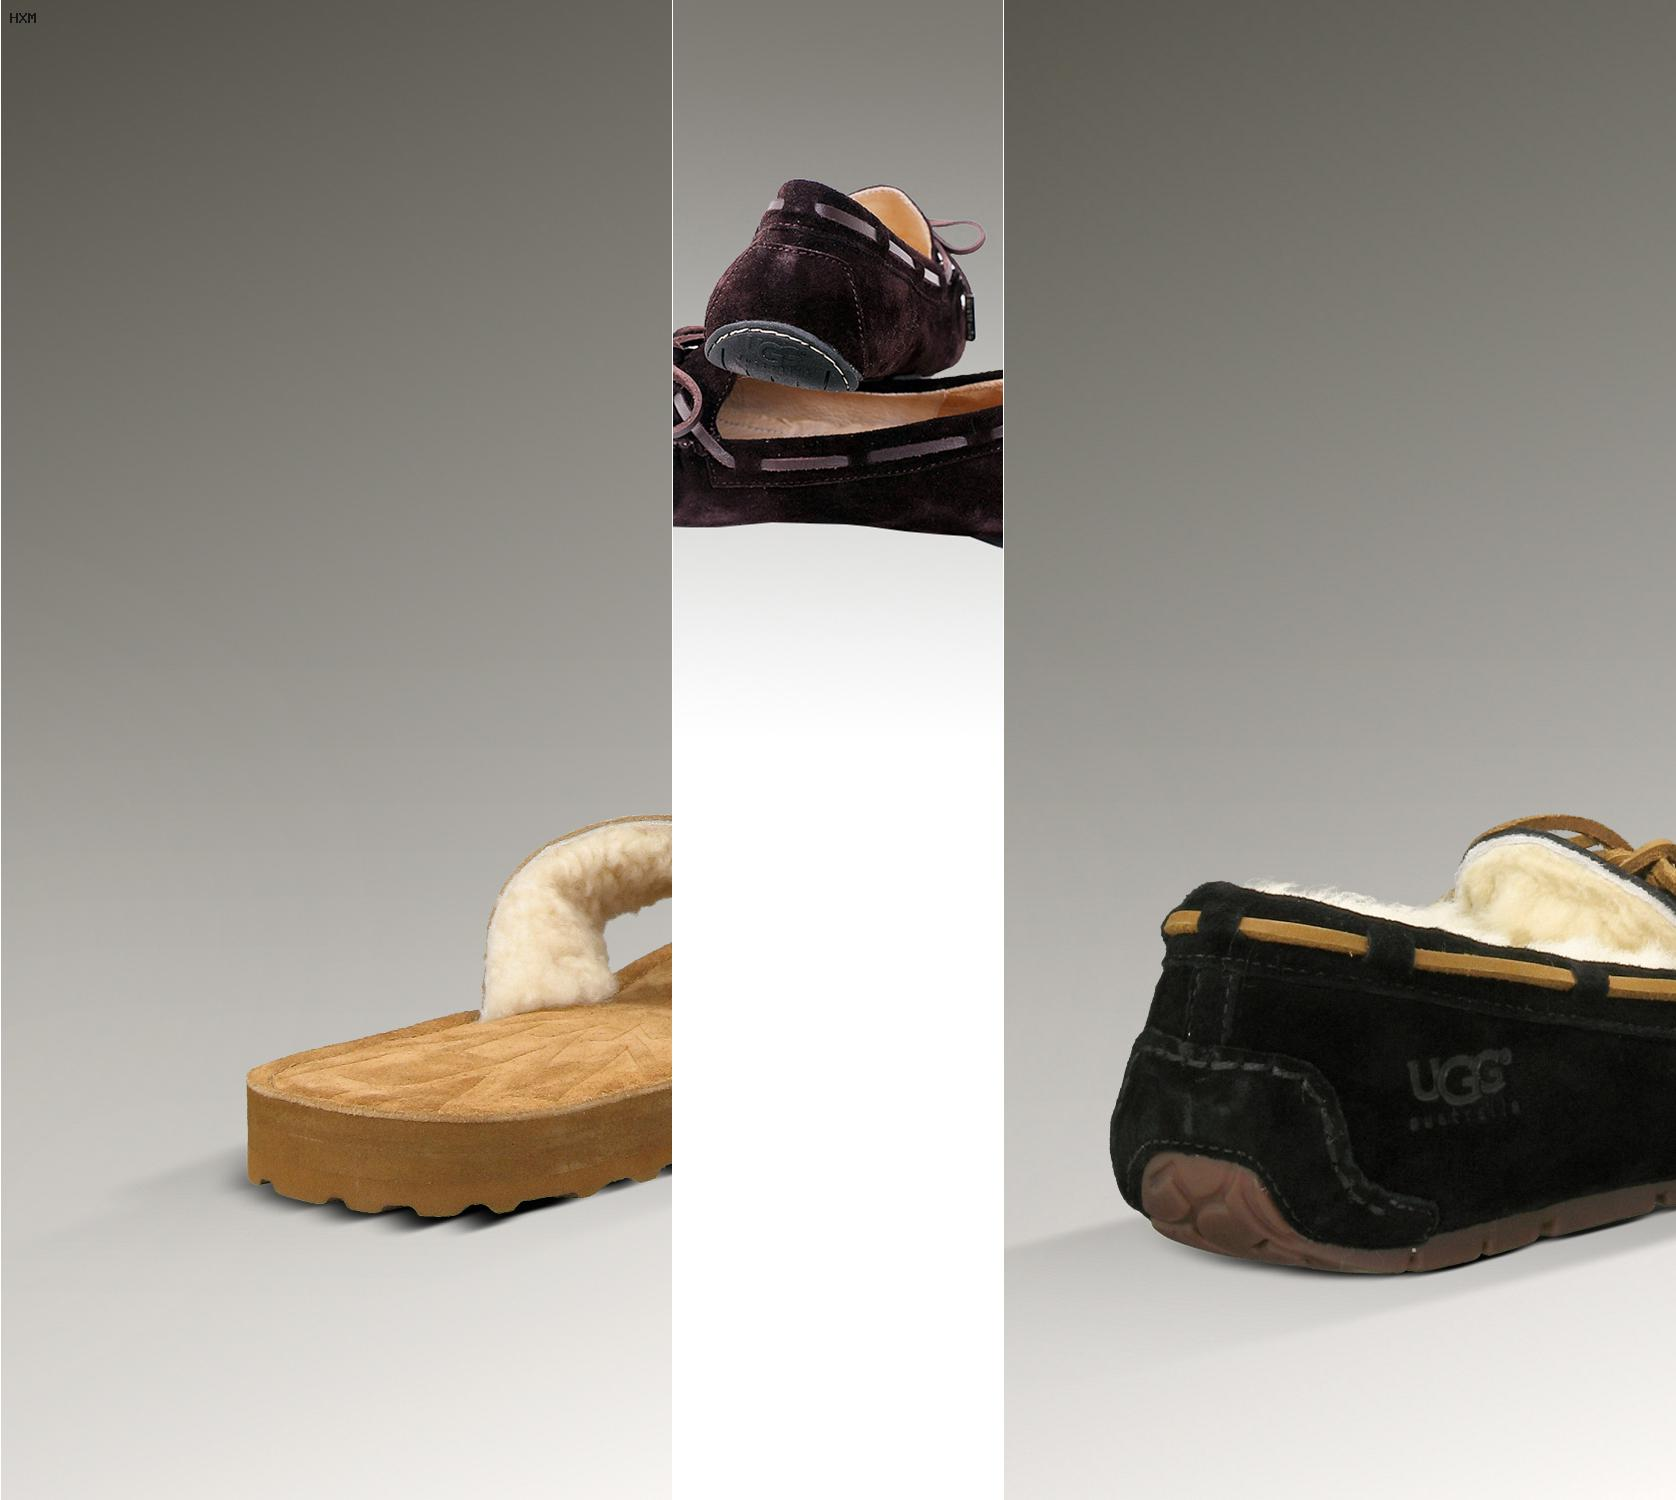 fausse ugg pas chere